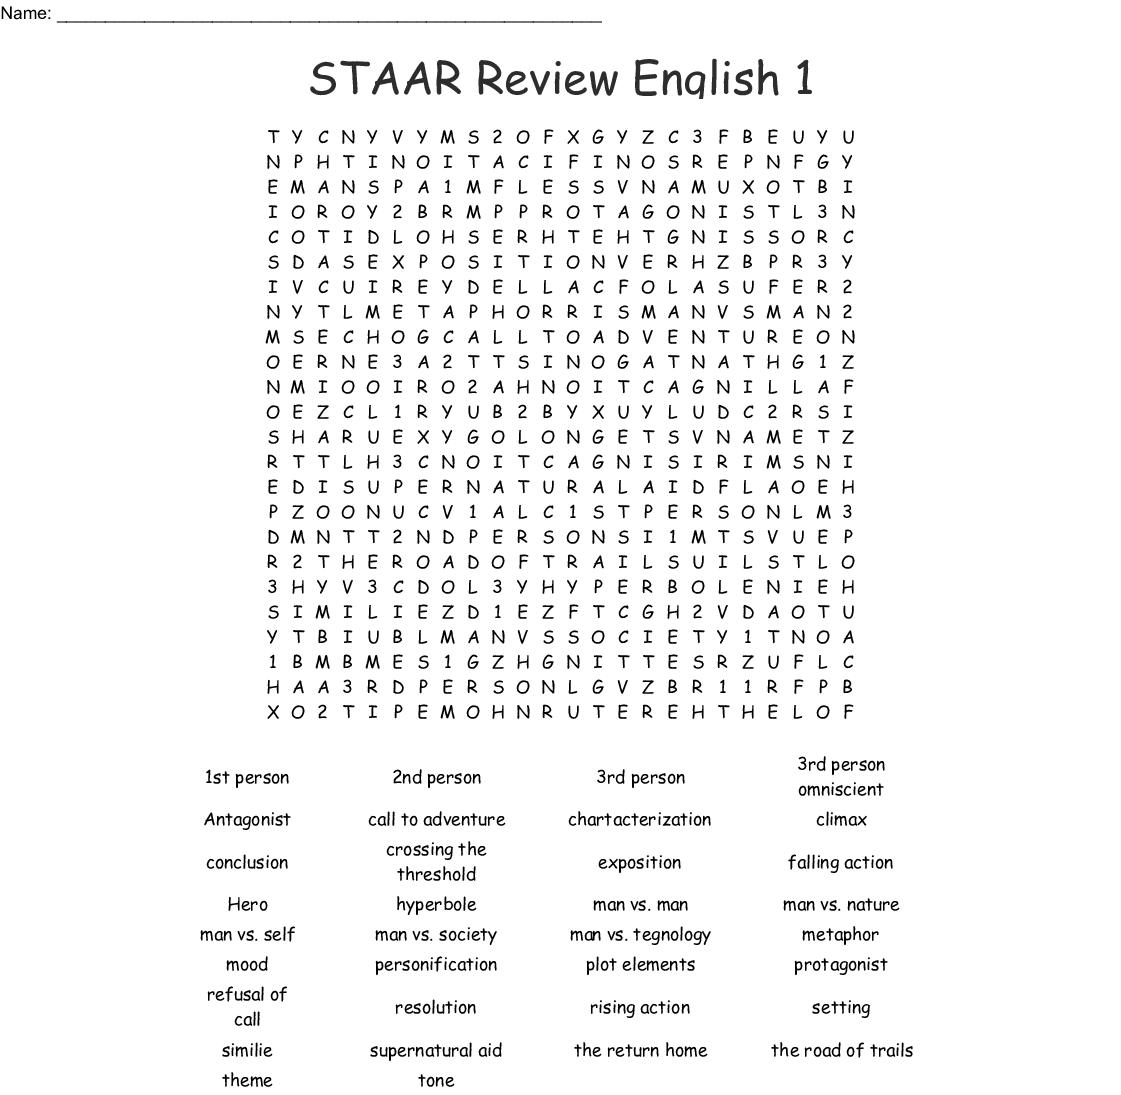 Figurative Language Terms Word Search - WordMint